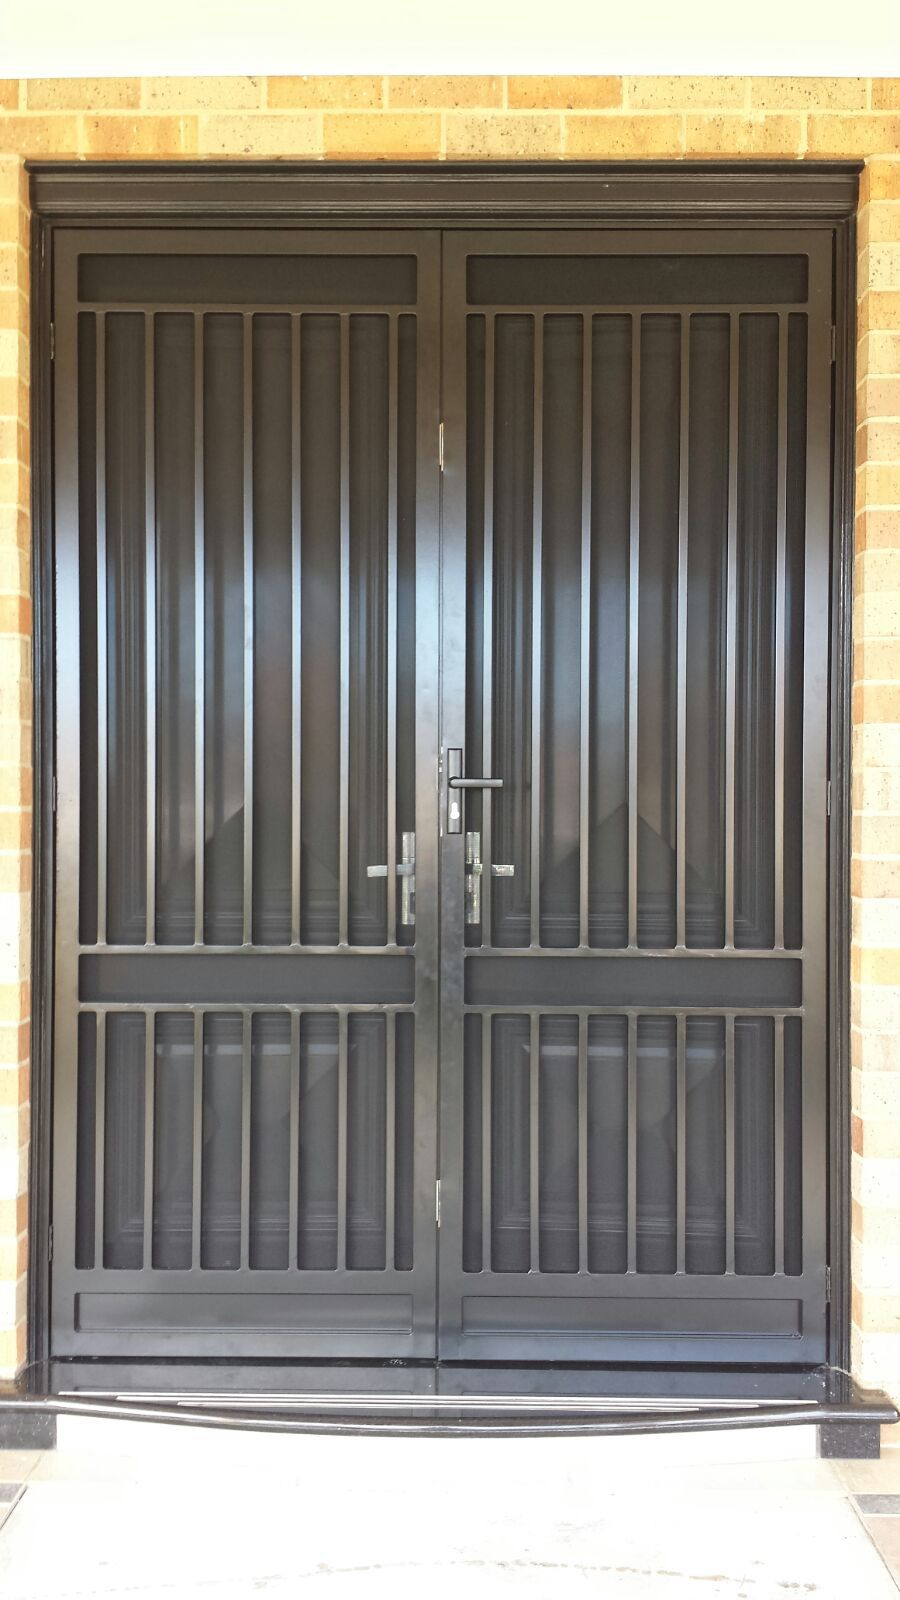 Custom Designed Steel Security Double Doors With Stainless Steel Mesh And Triple Locks Installed In Beau Steel Doors Steel Security Doors Double Front Doors